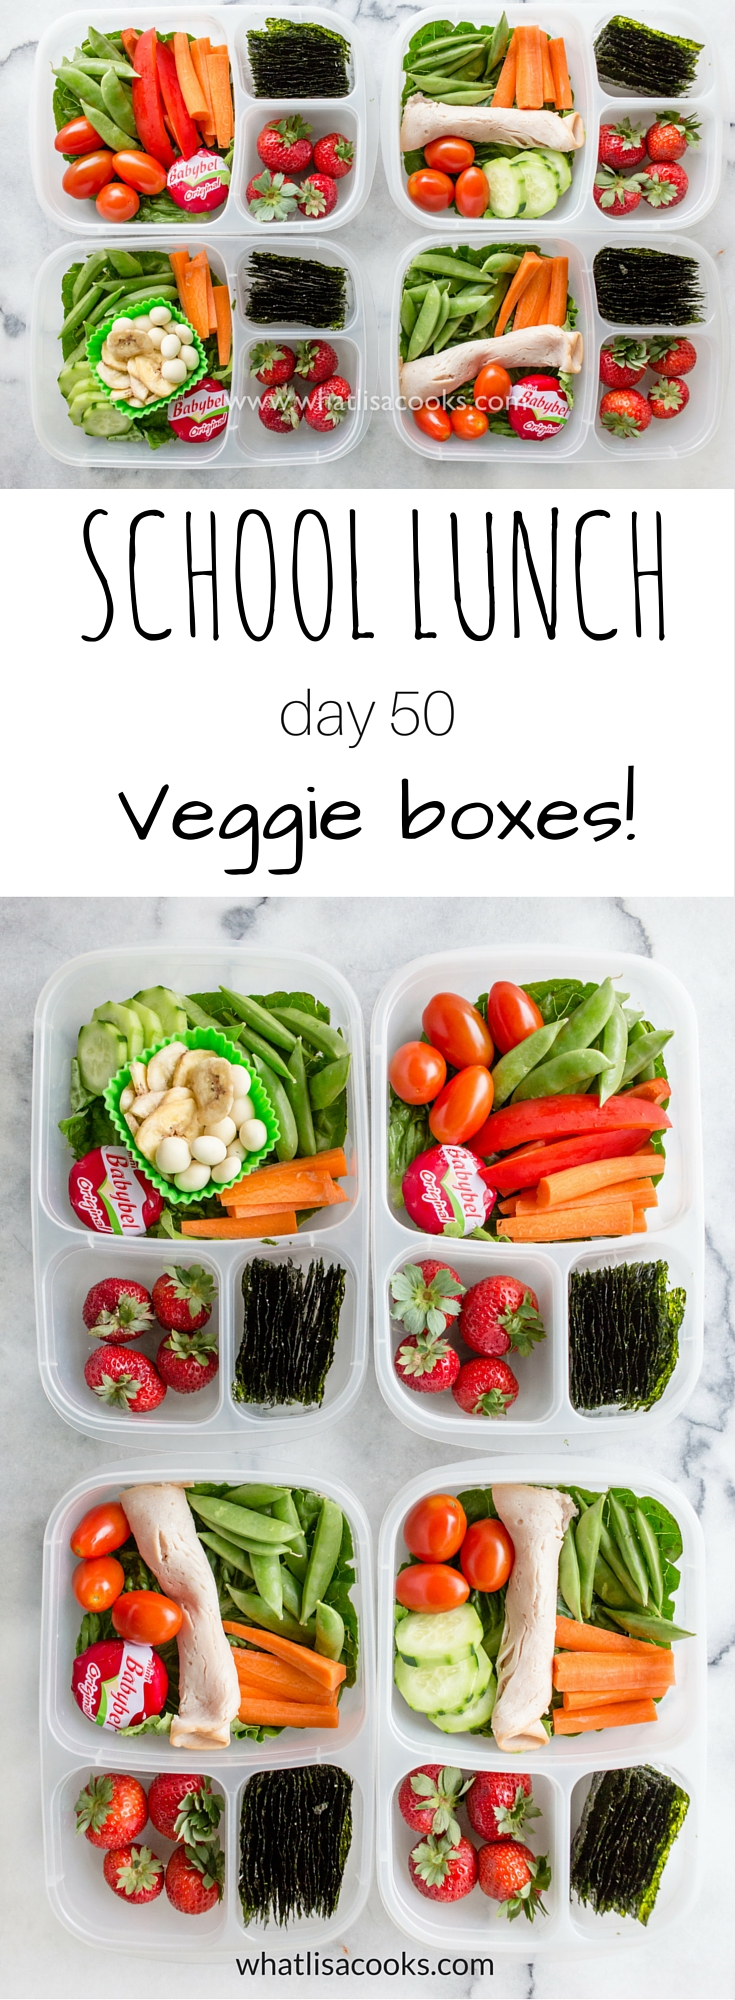 A bright and fresh school lunch box full of veggies - from WhatLisaCooks.com